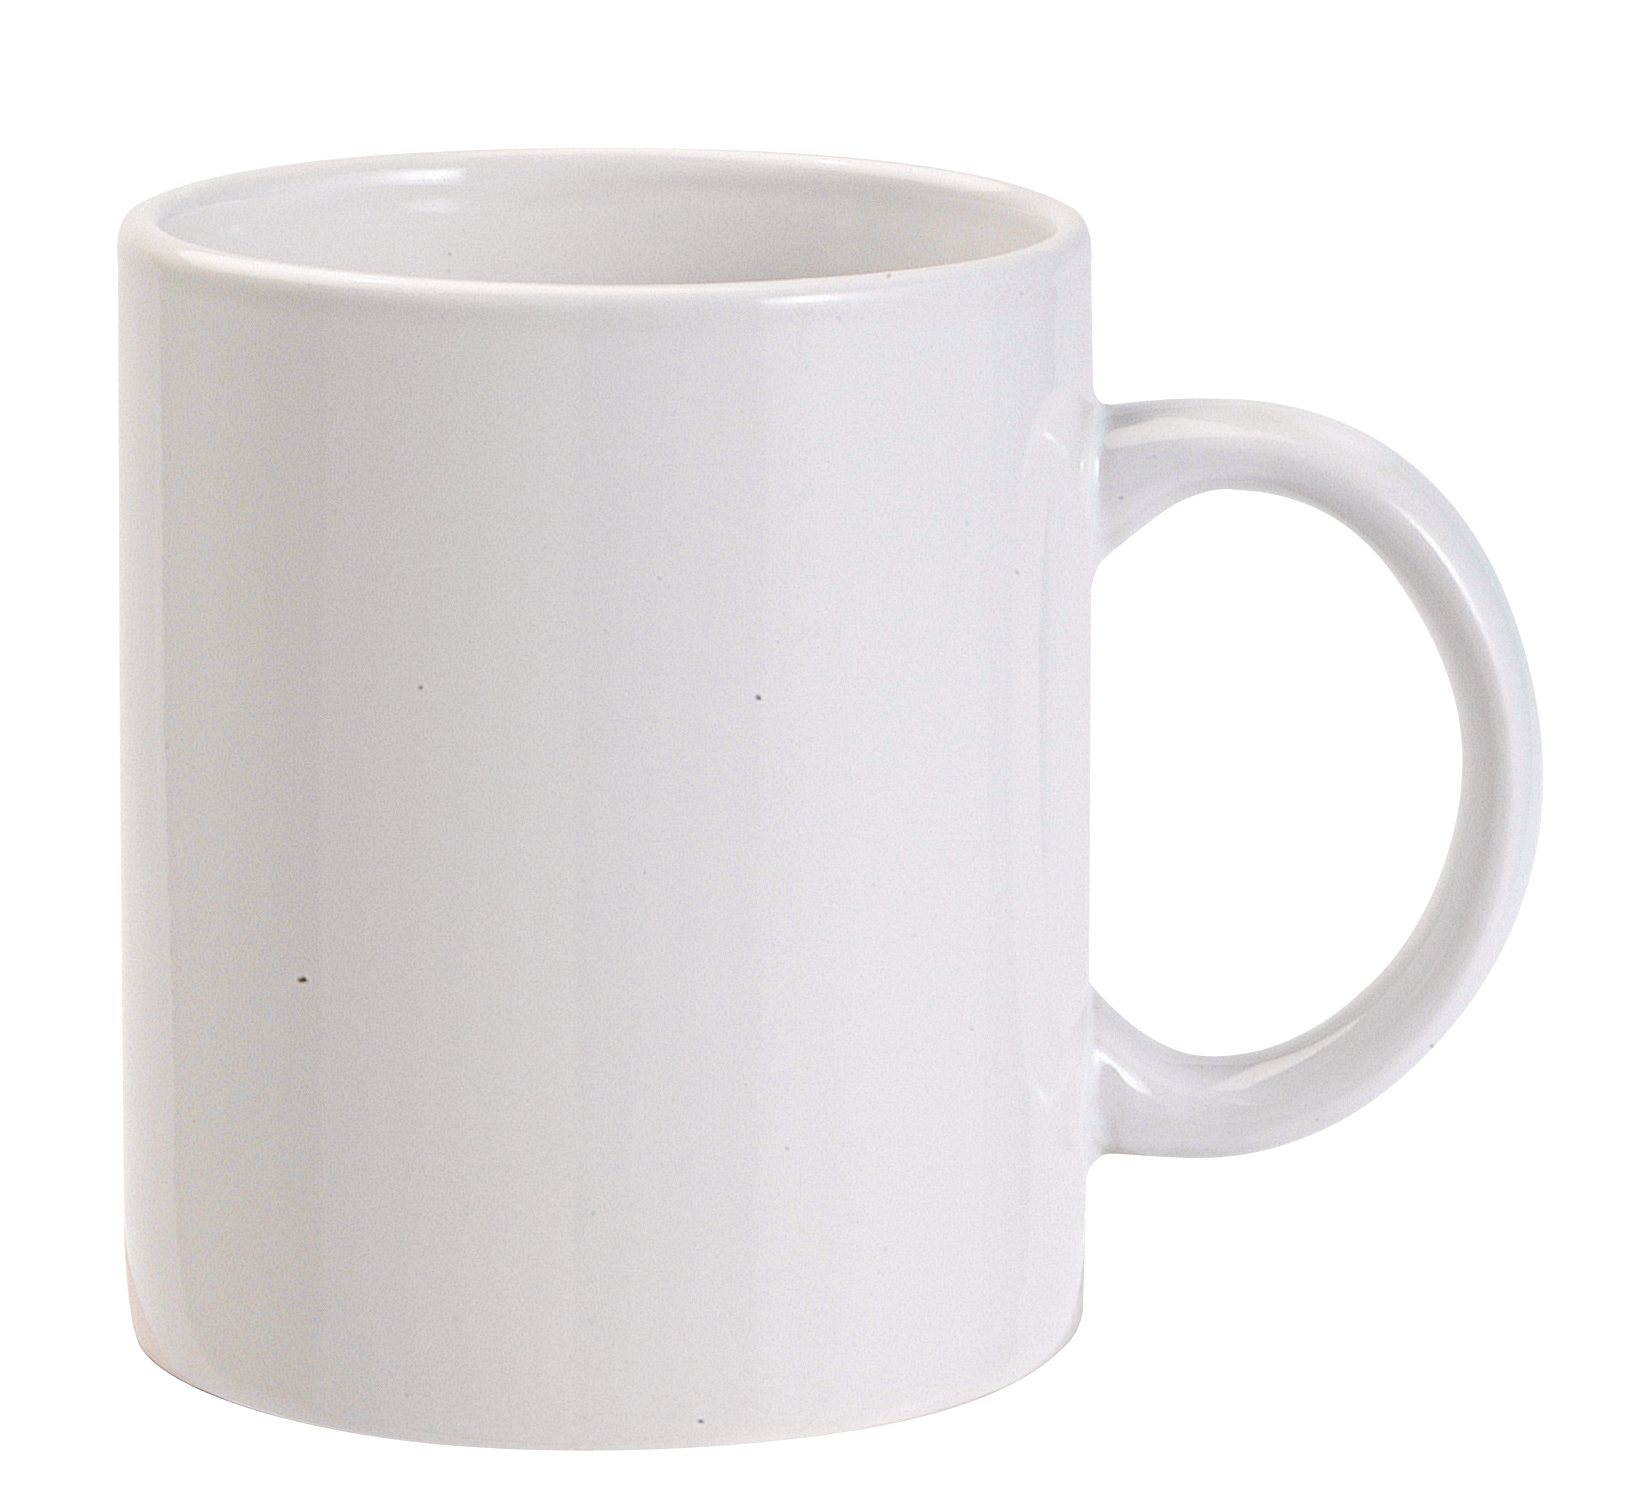 Cup HD PNG Transparent Cup HD.PNG Images..